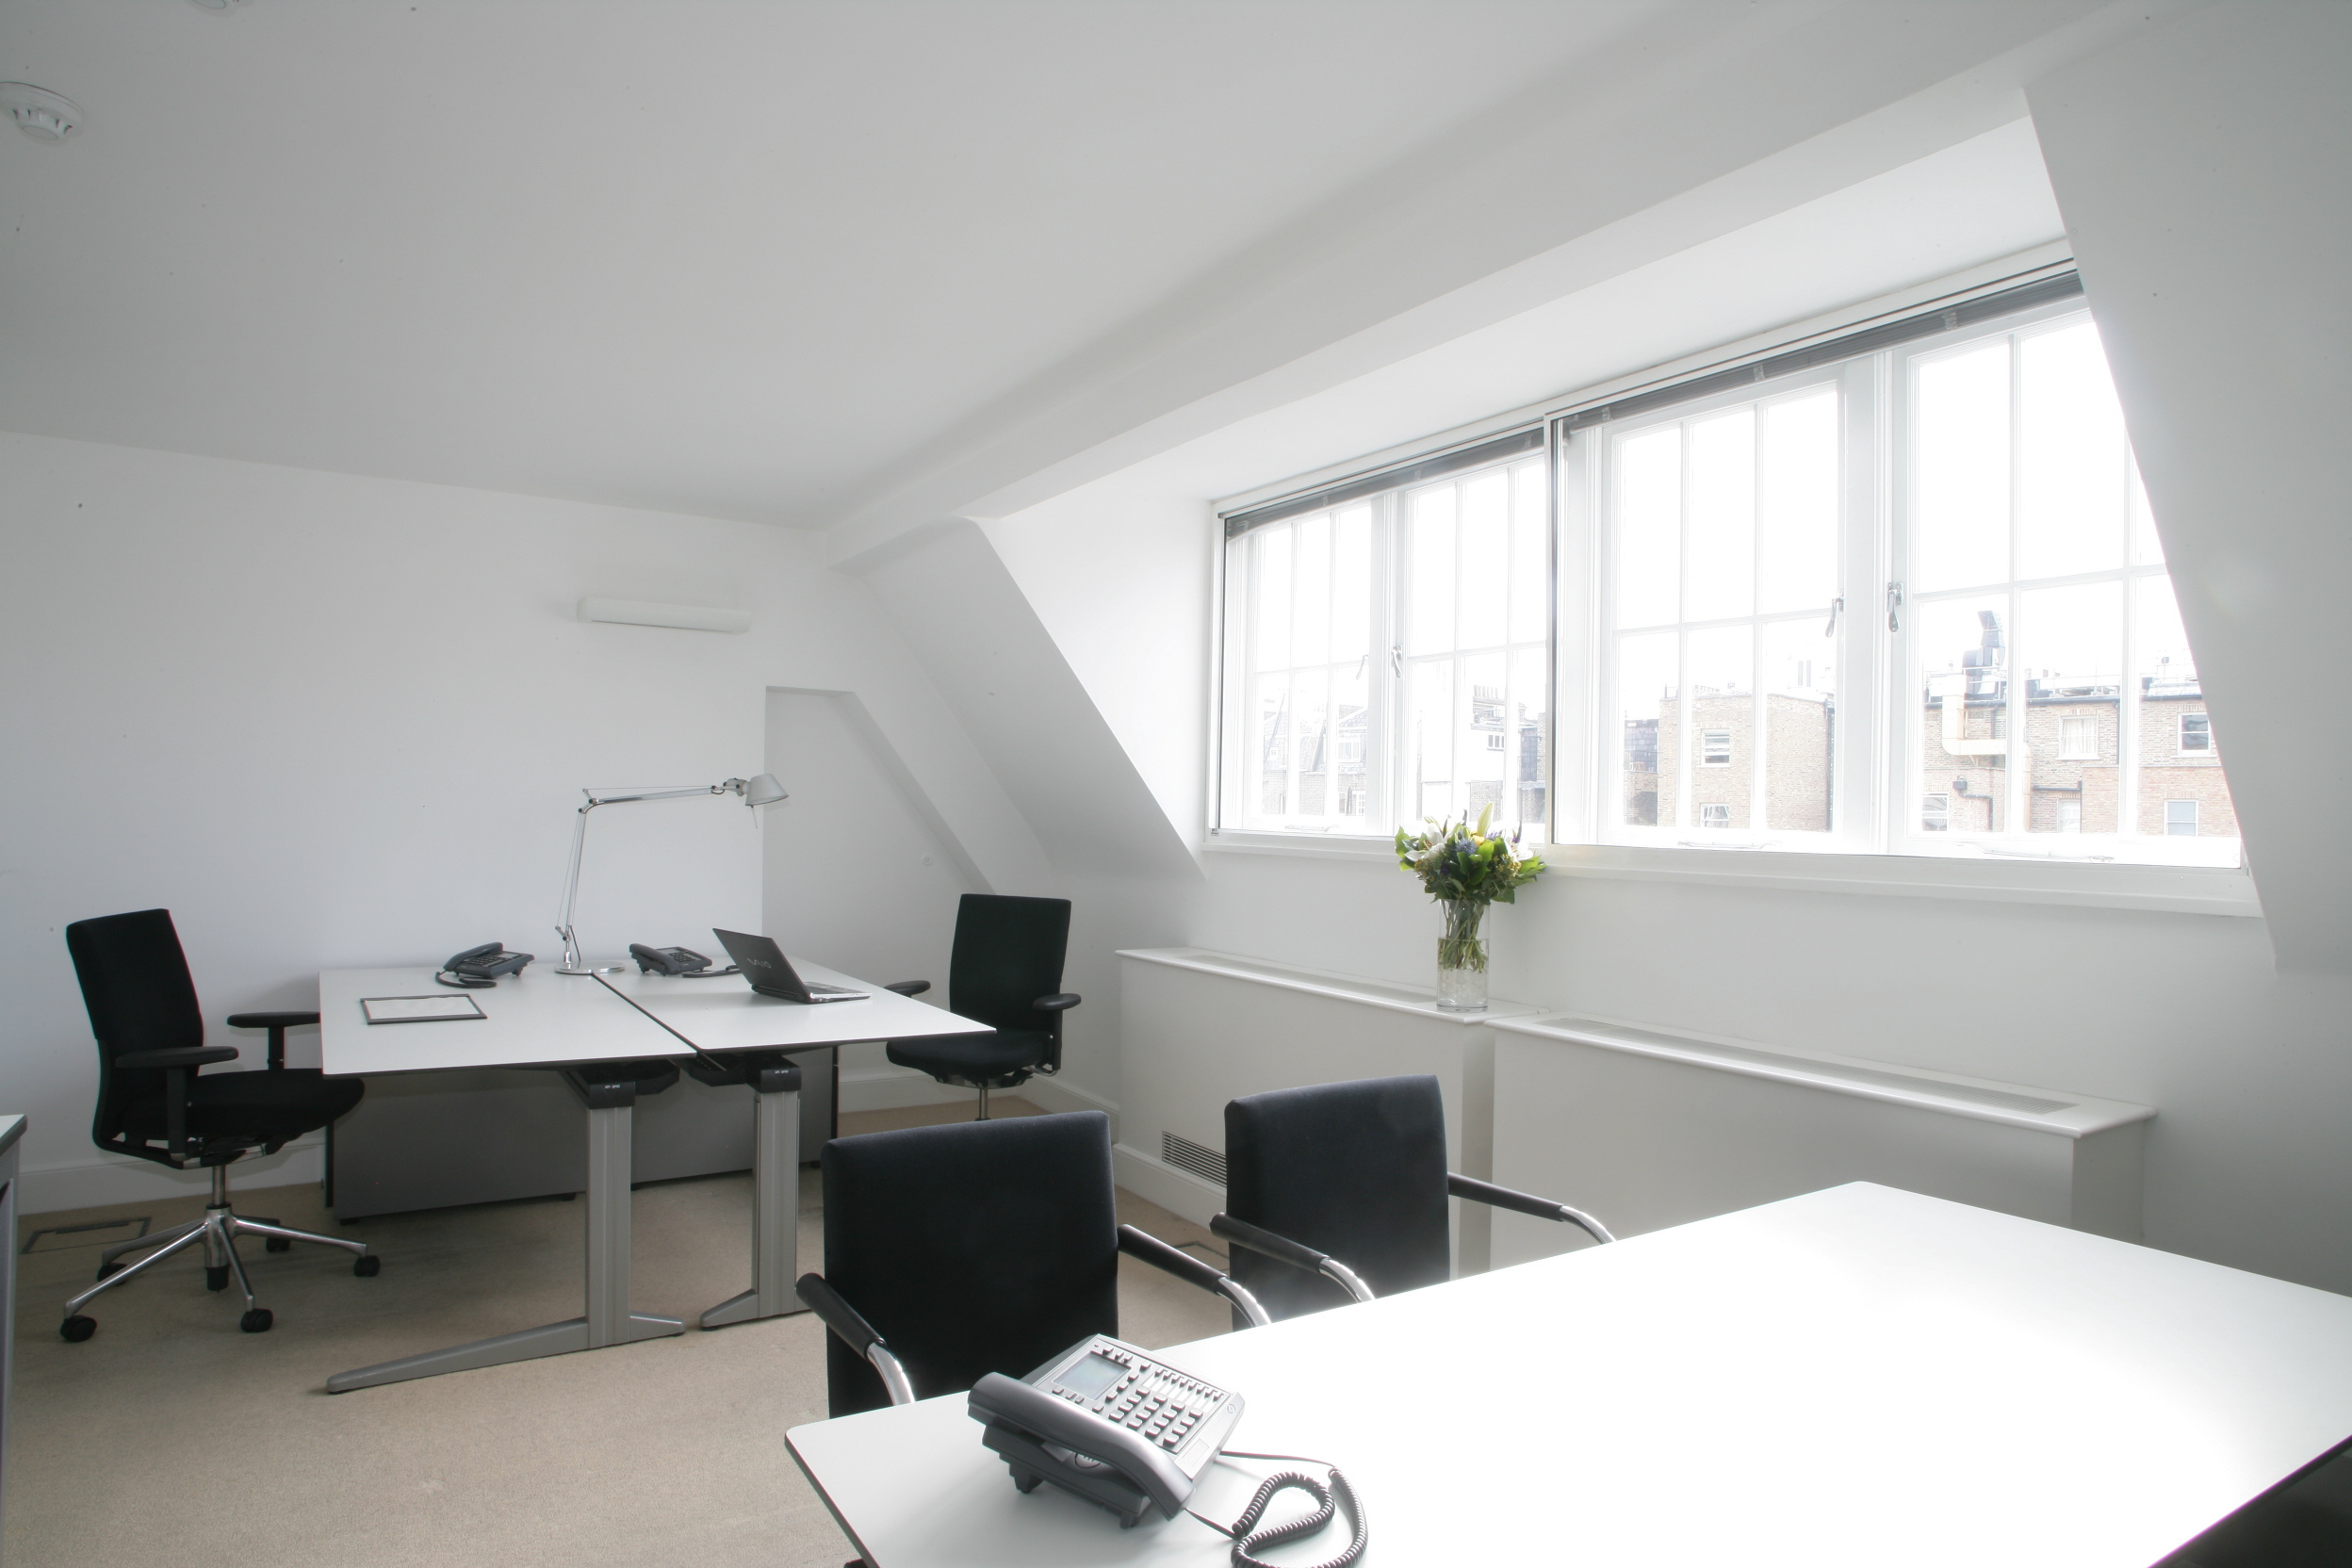 Small knightsbridge office space to rent 020 3434 3877 - Small office space rental collection ...